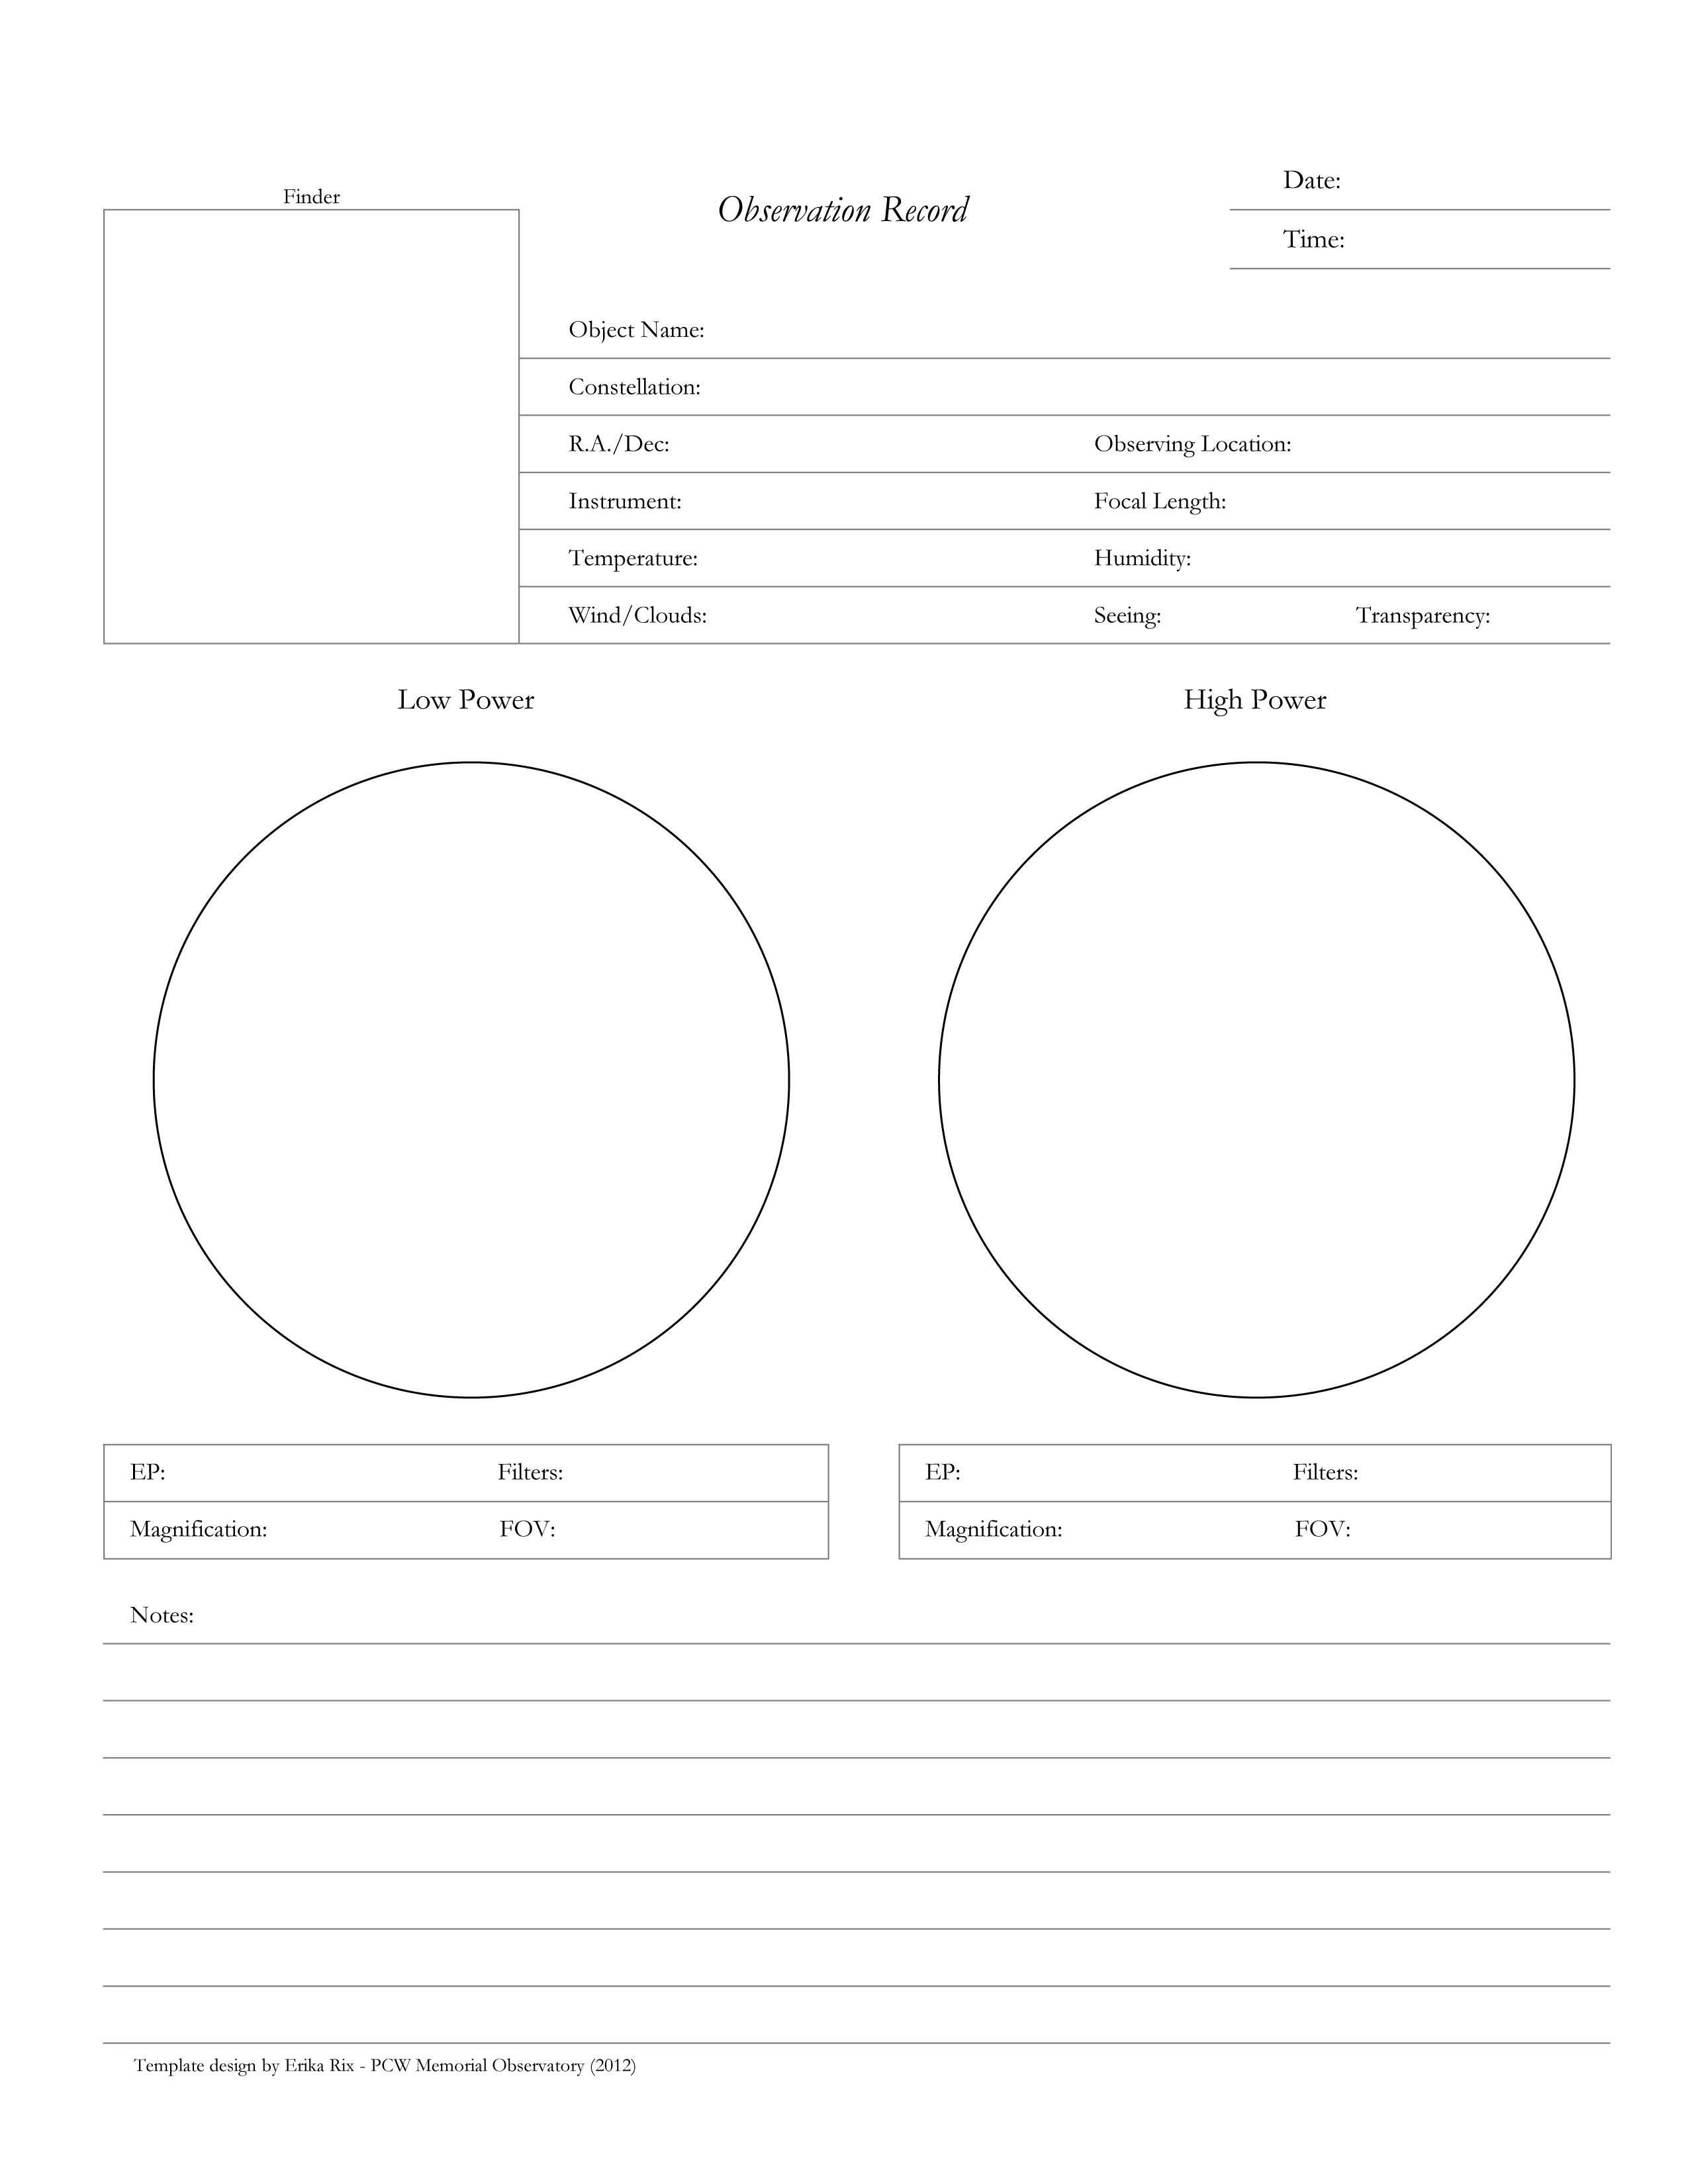 Observation Forms Templates Pcw Memorial Observatory